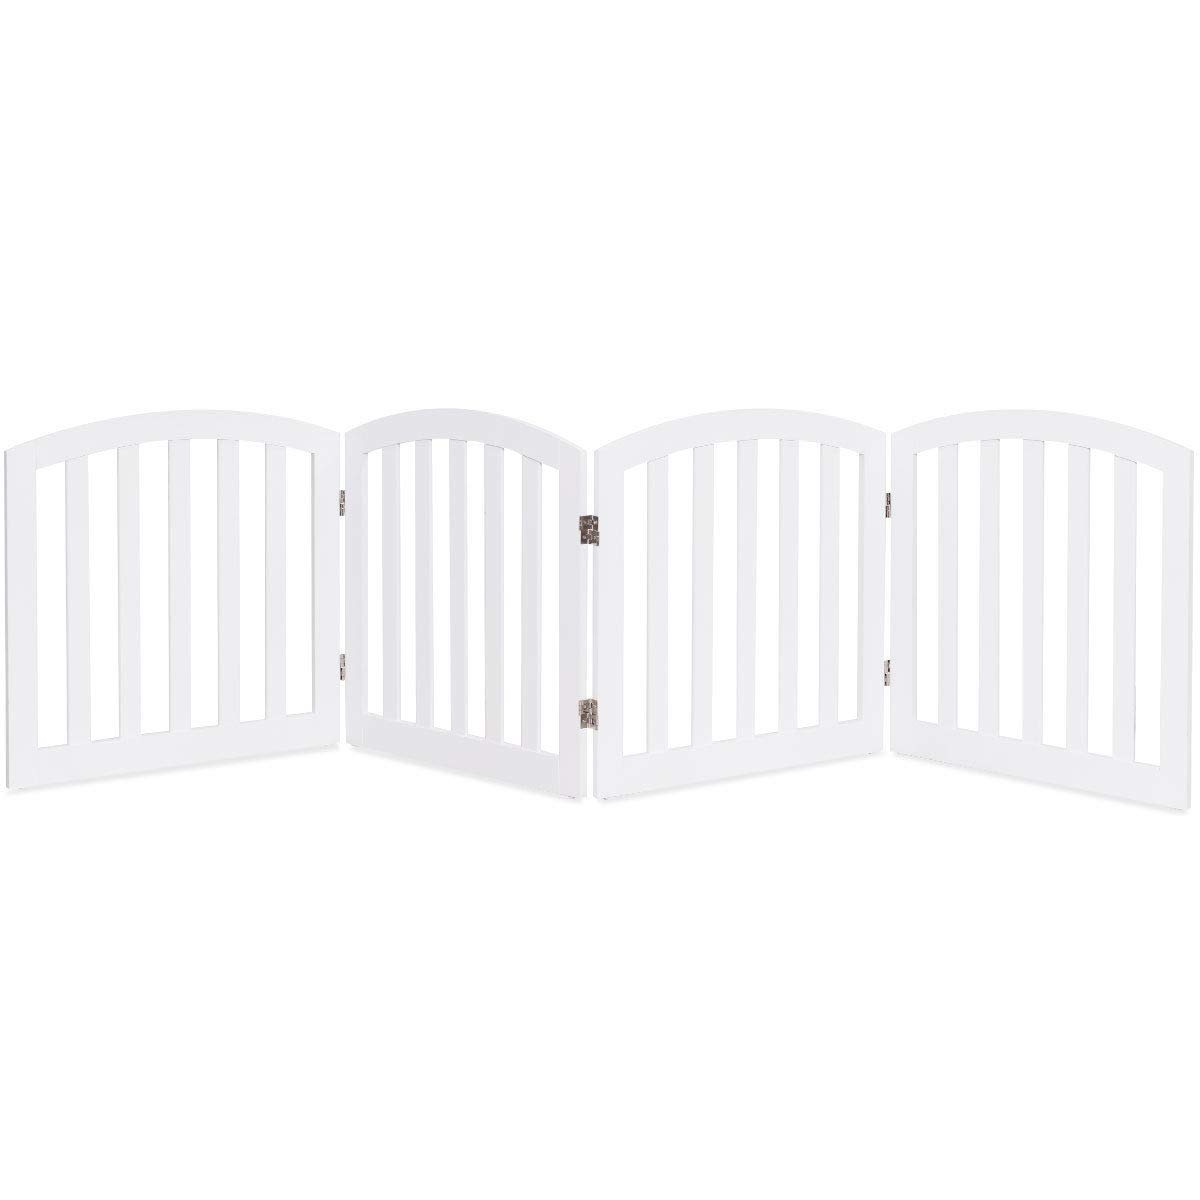 Giantex 24'' Dog Gate with Arched Top for Doorway and Stairs, Configurable Free Standing Wooden Gate with Foldable Panels and Sturdy Metal Hinges, Pet Dog Safety Fence (96'' W, White)